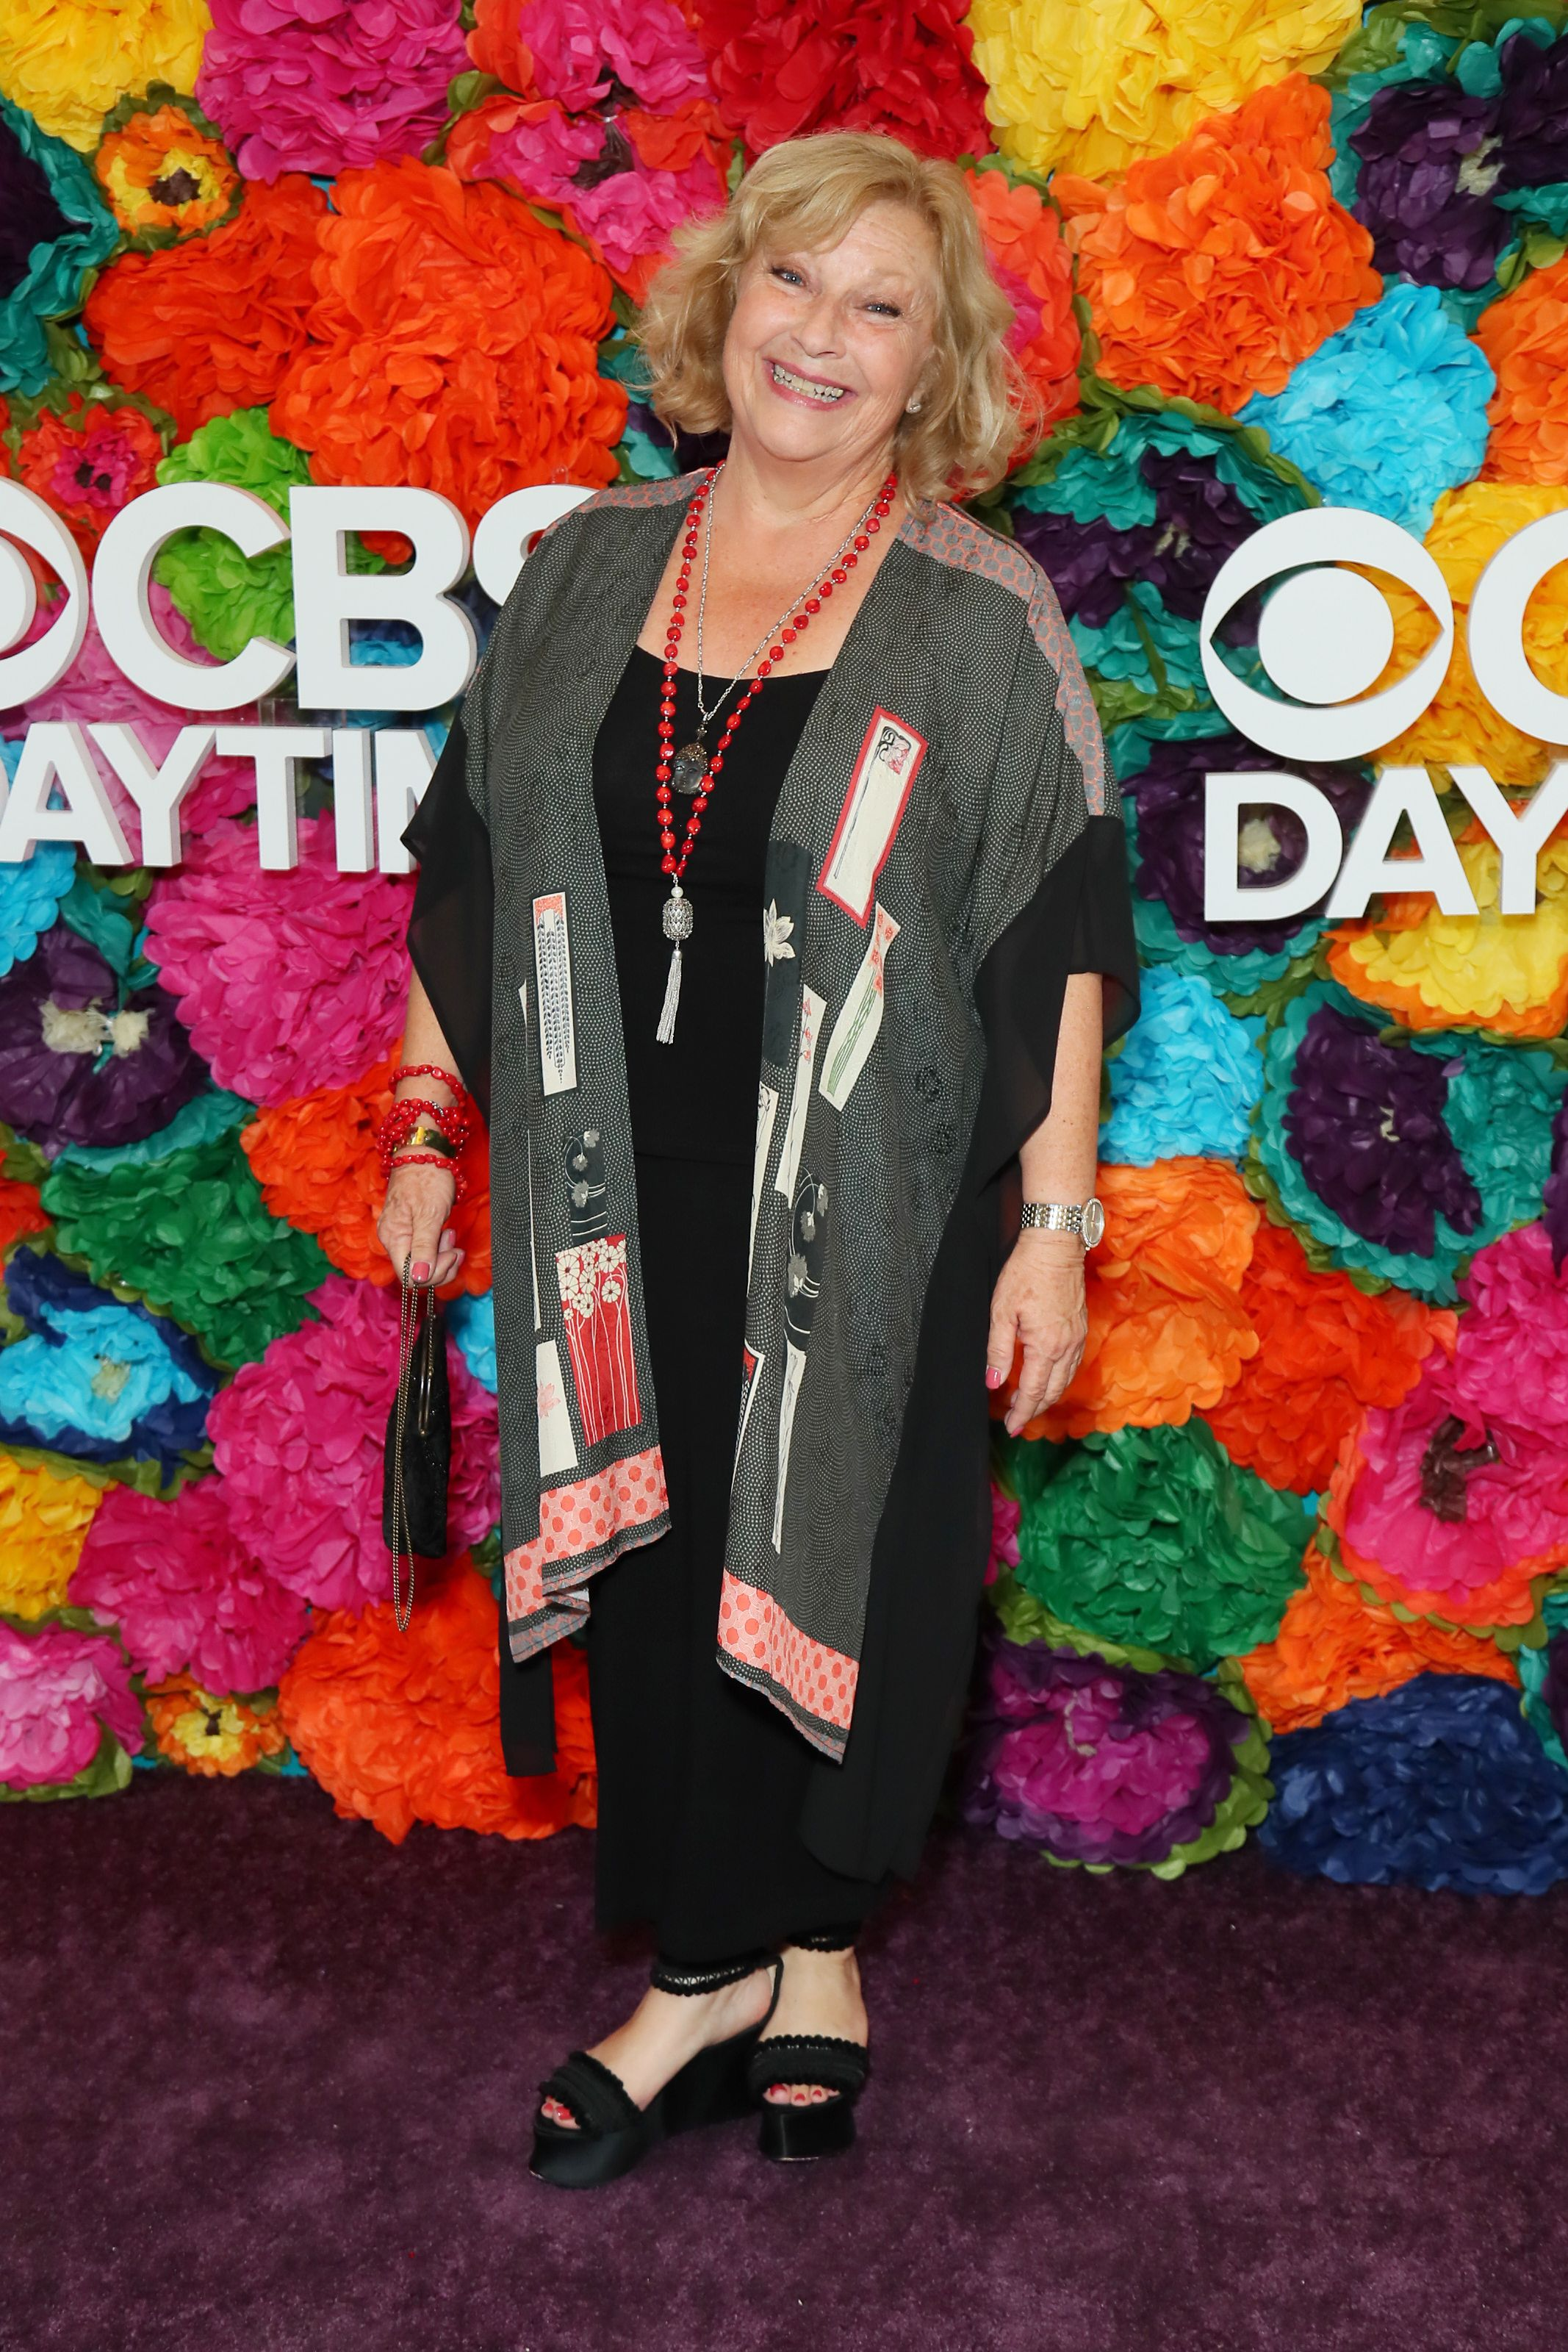 Beth Maitland attends CBS Daytime Emmy Awards After Party at Pasadena Convention Center on May 05, 2019 in Pasadena, California.   Photo: Getty Images